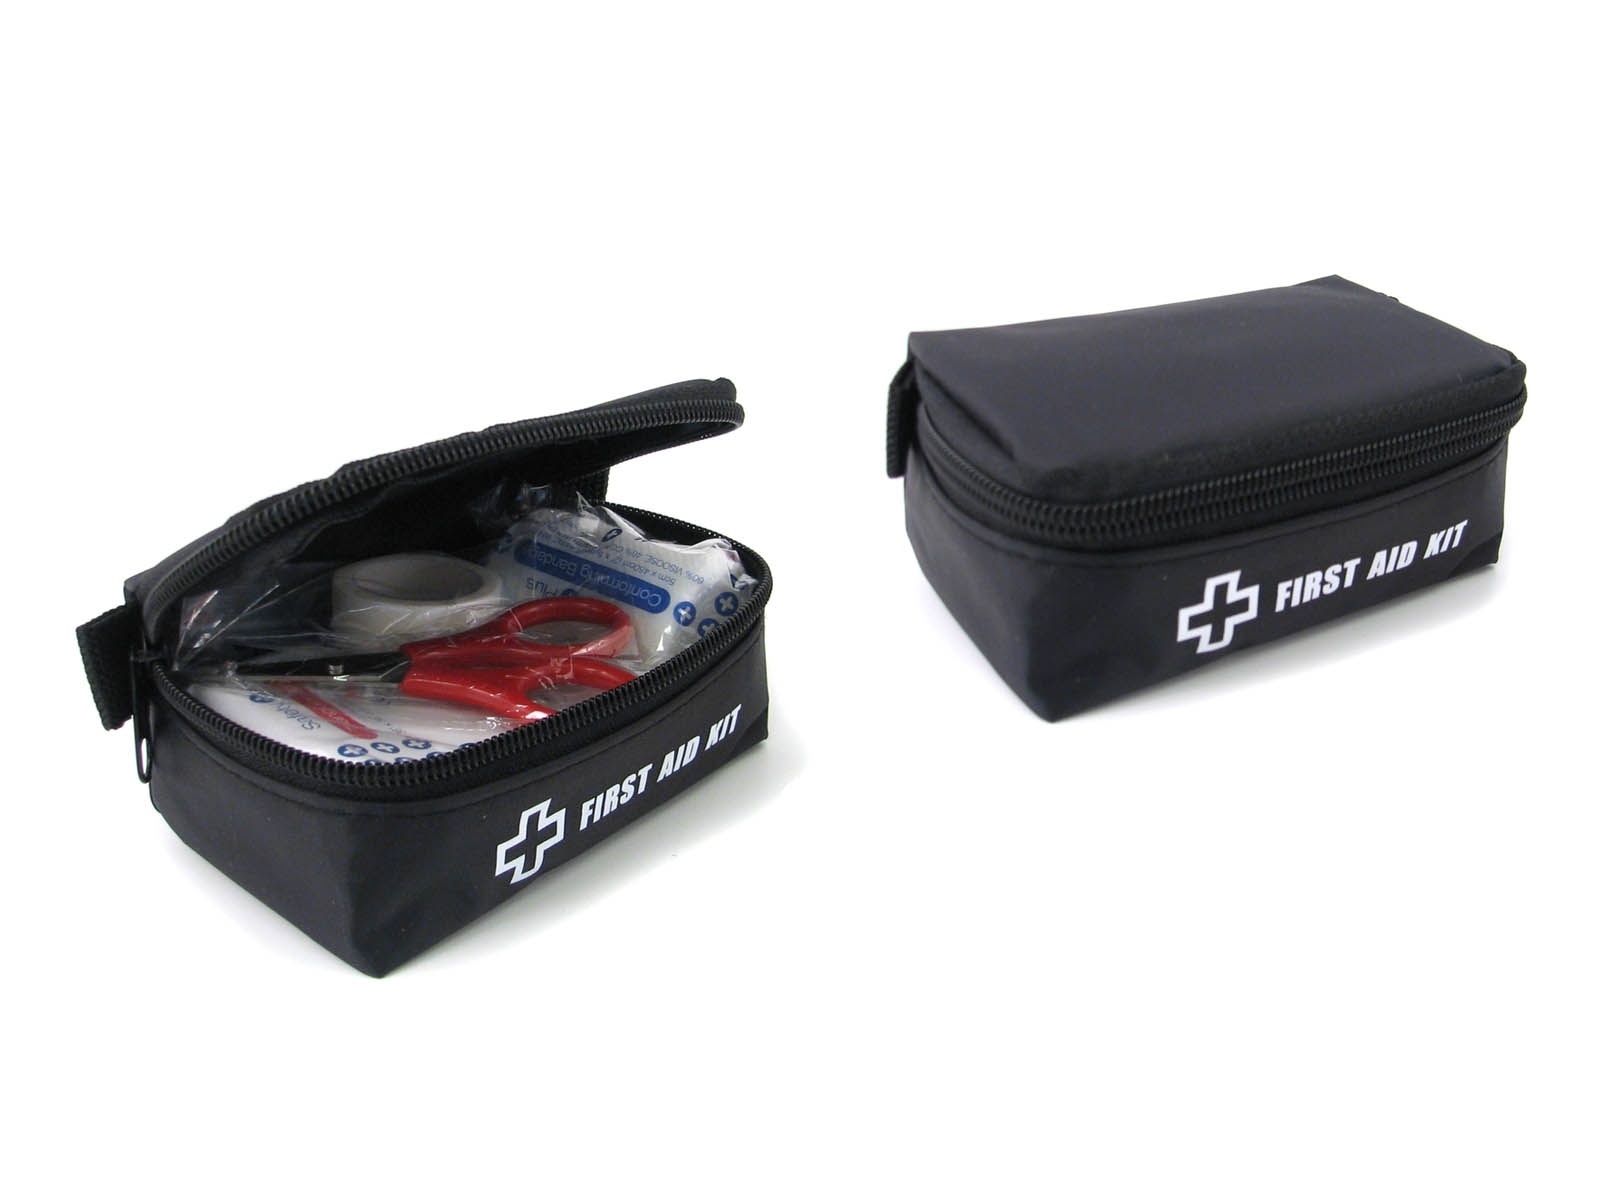 First Aid kit - mini - Import & manufacture for promotional and